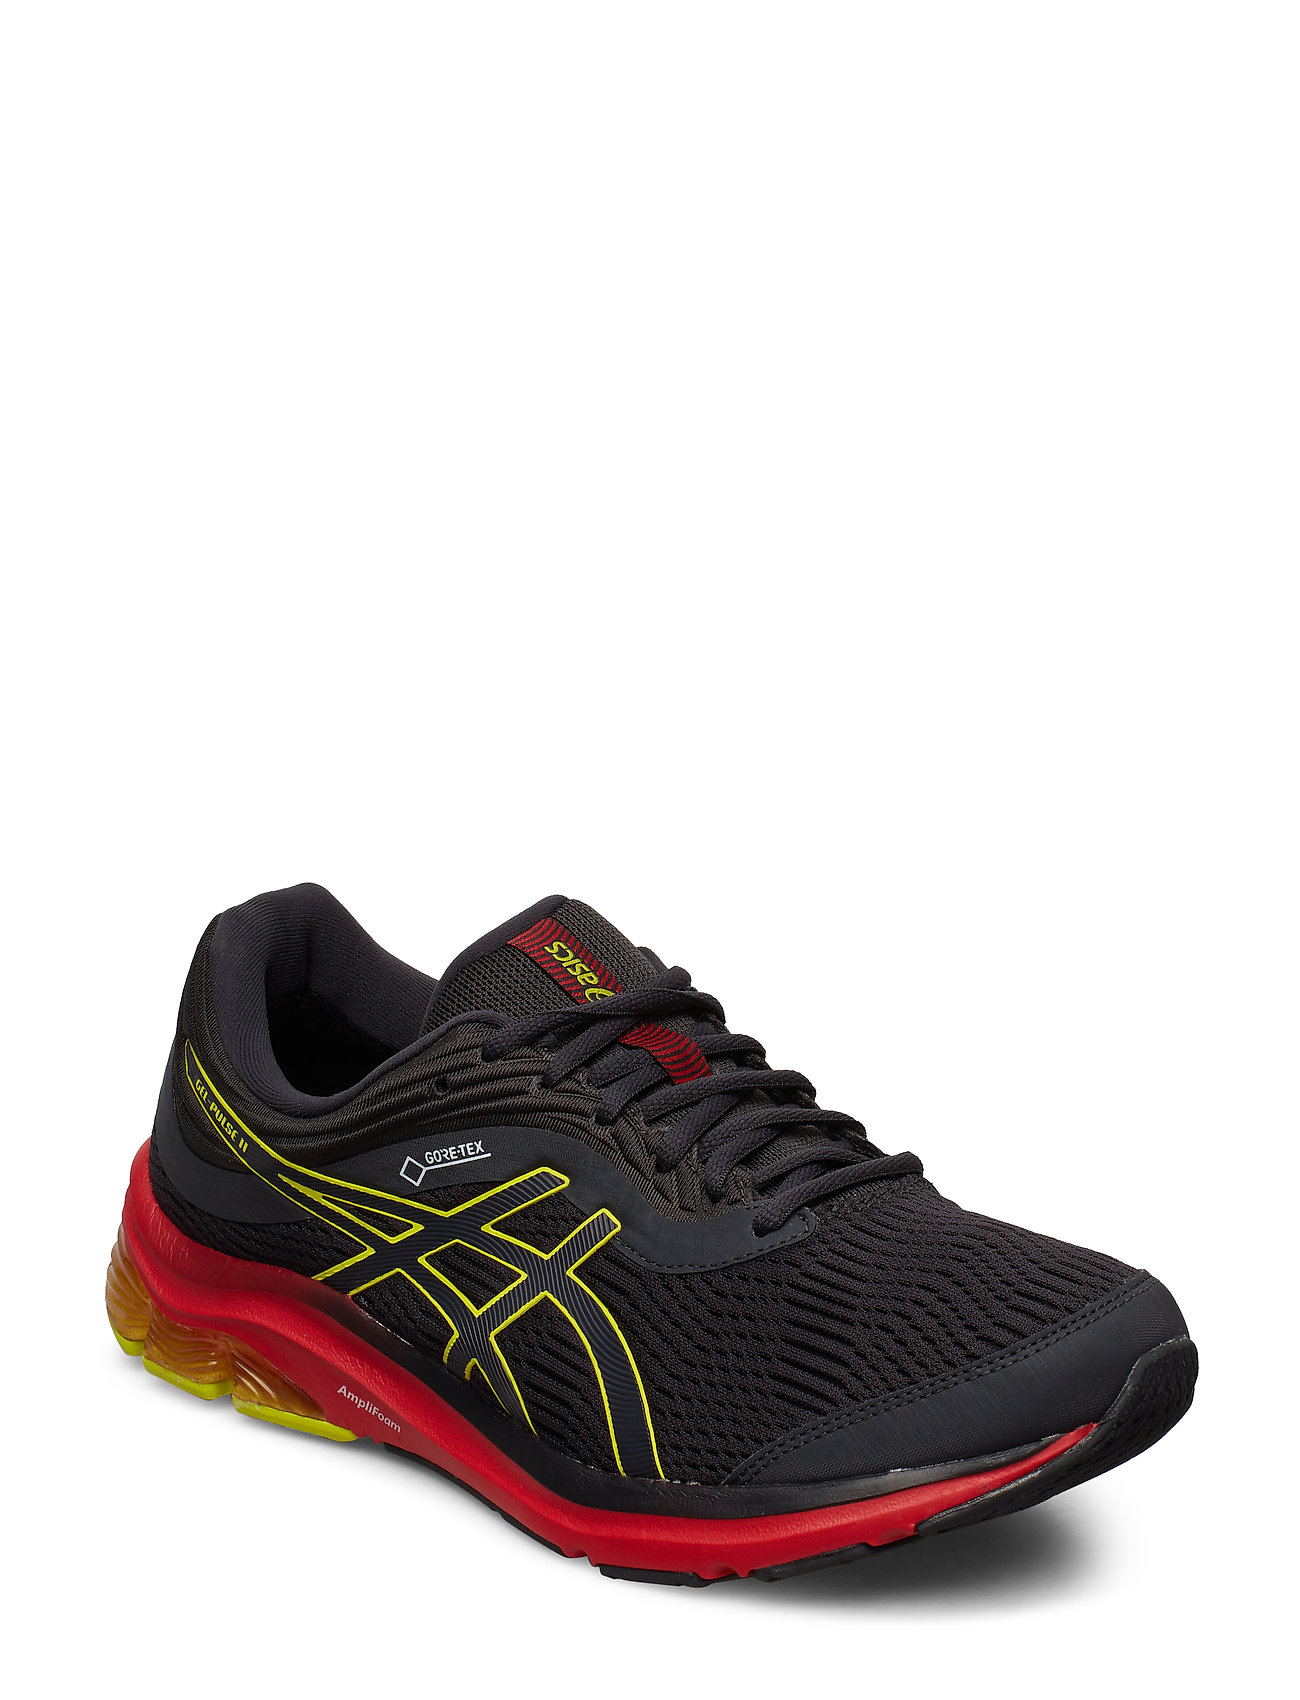 ASICS Gel-Pulse 11 G-Tx Shoes Sport Shoes Running Shoes Schwarz ASICS